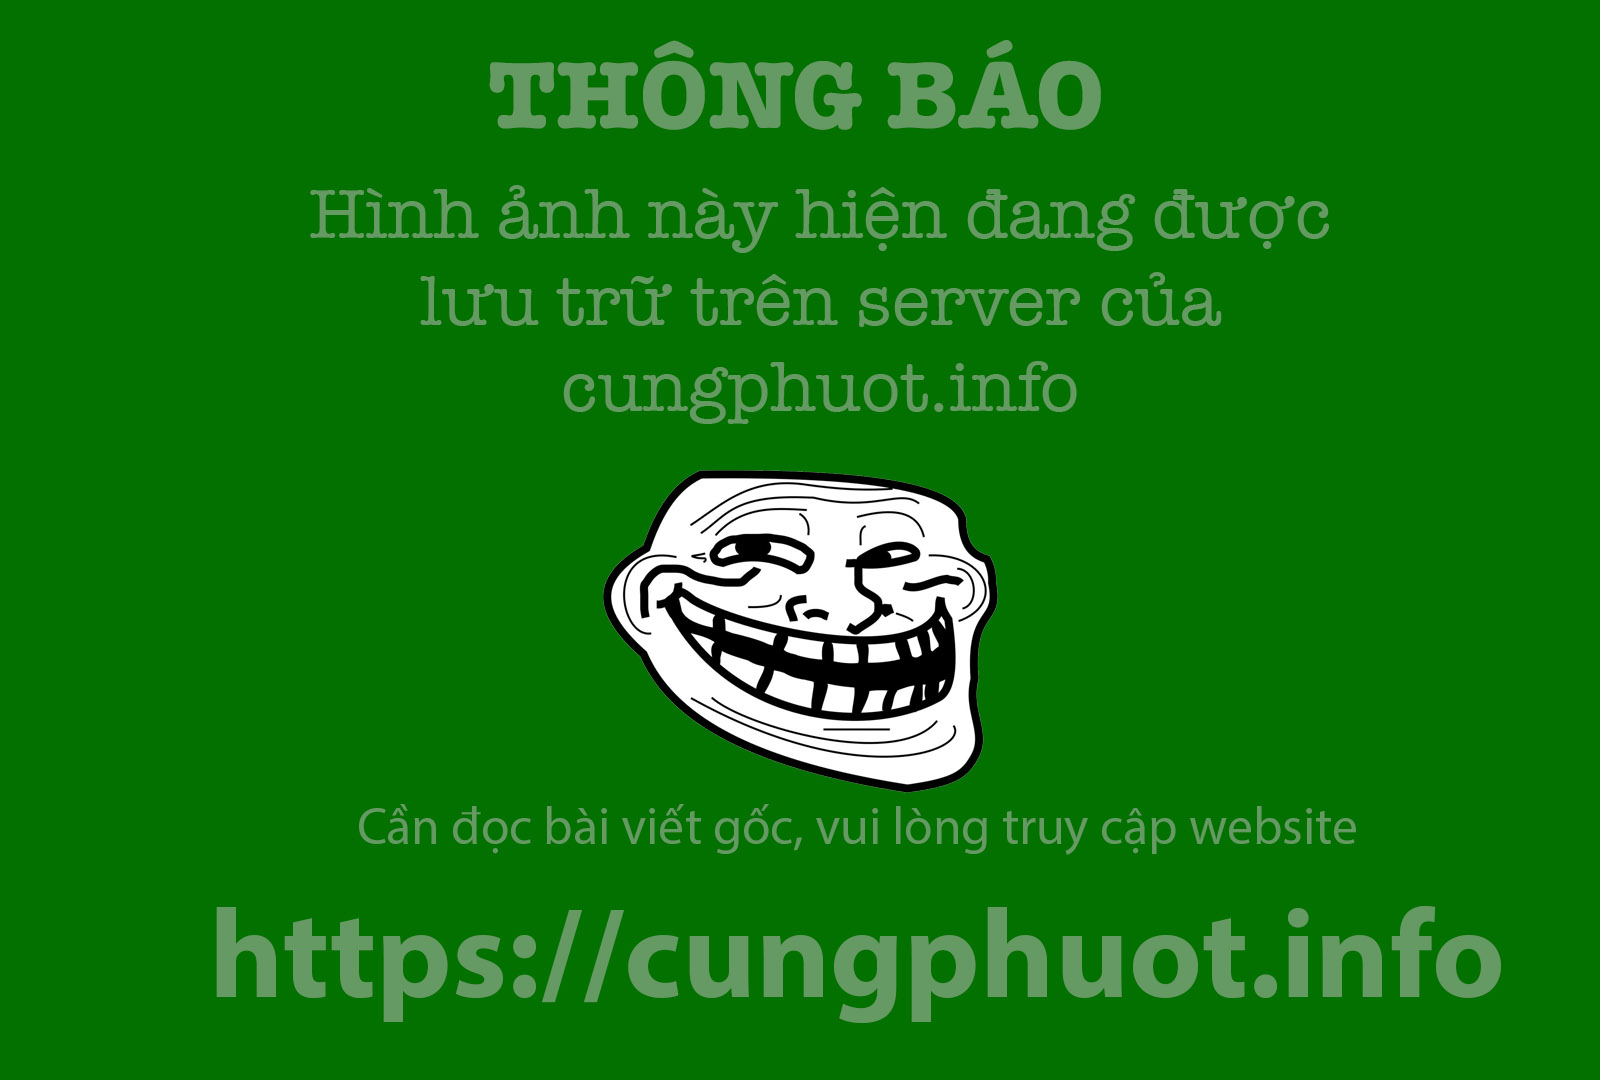 Mien Tay mua nuoc noi di mai chang het diem check-in hinh anh 6